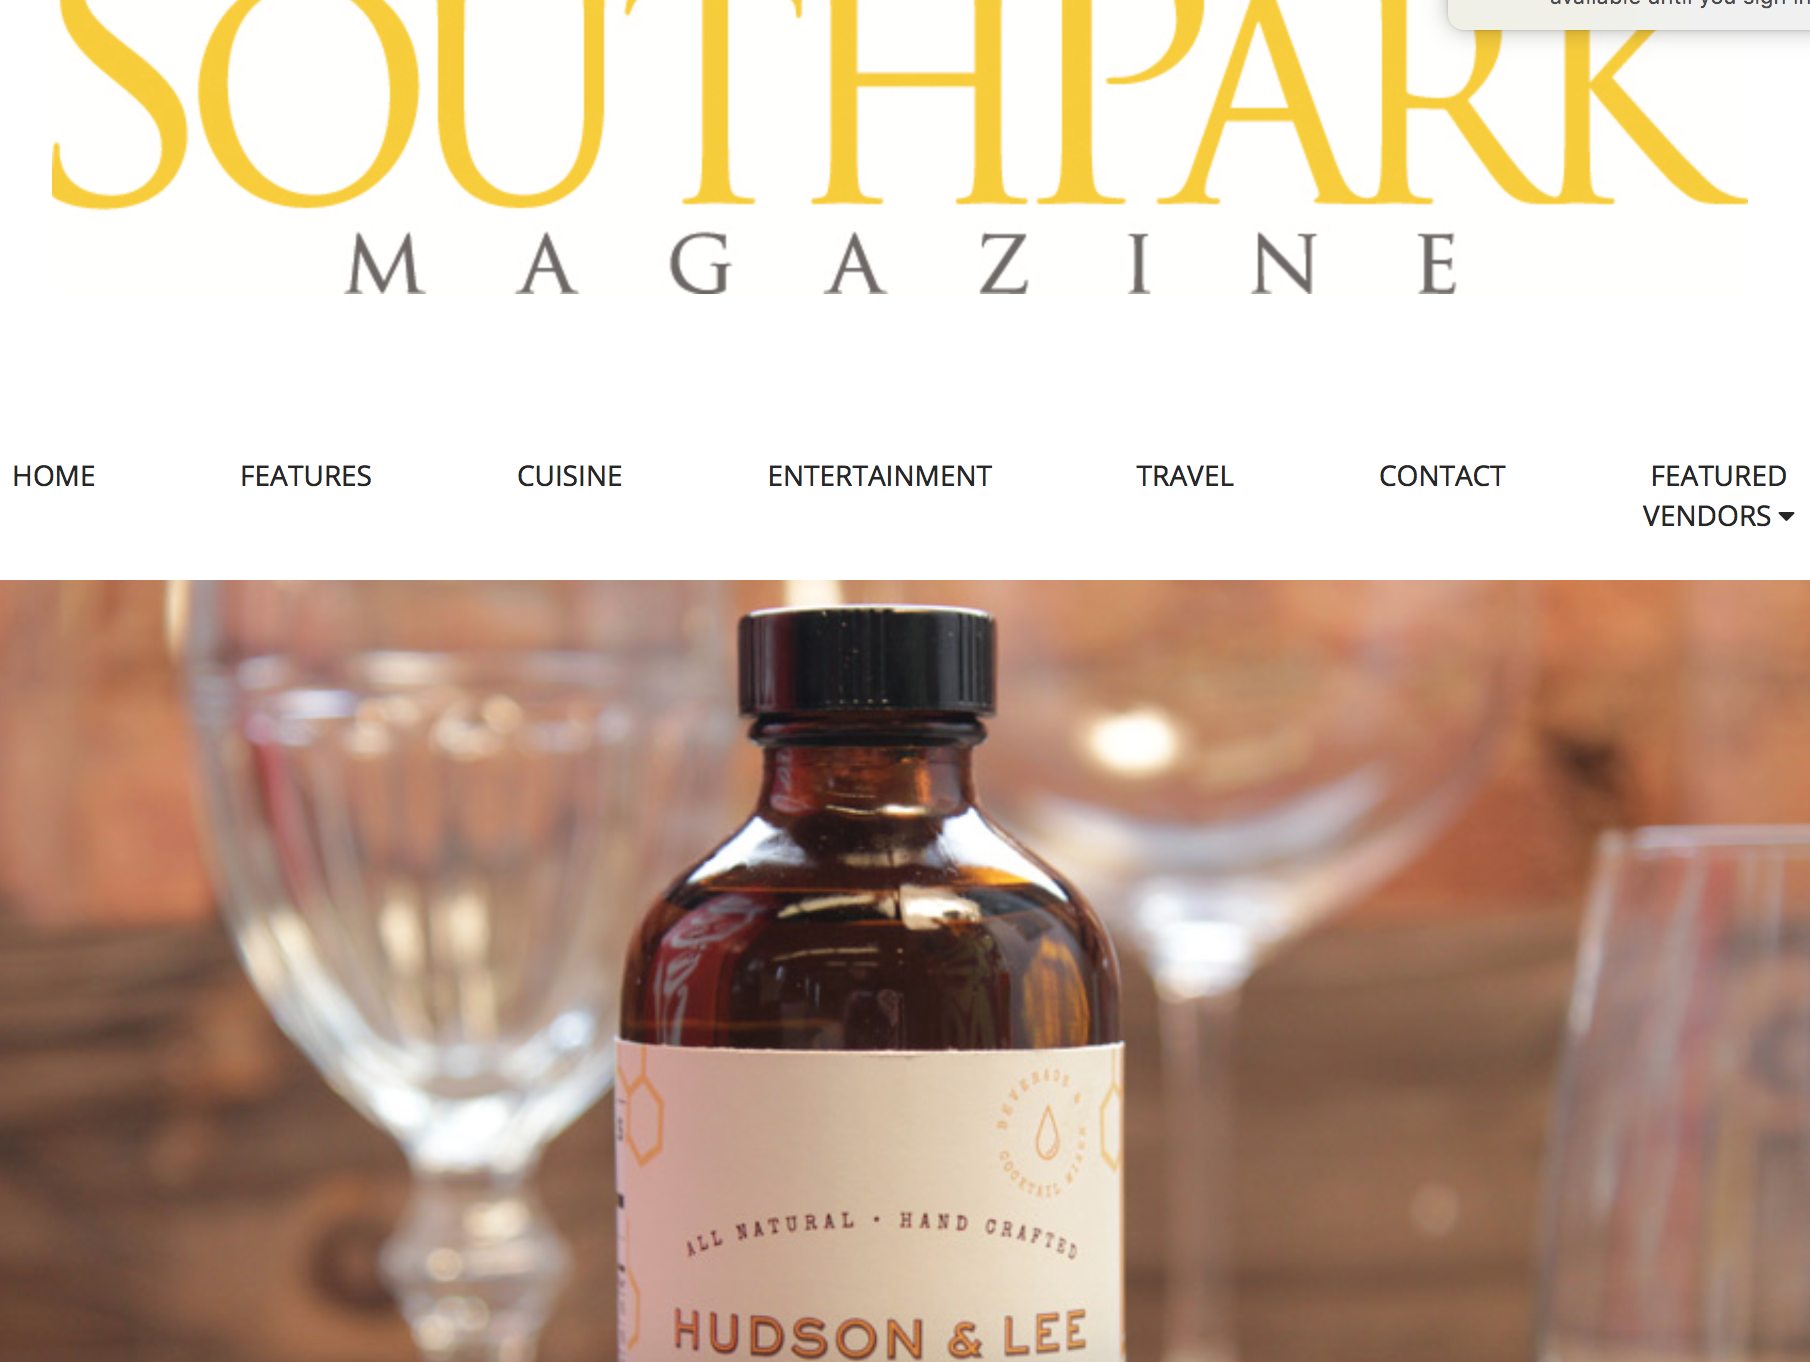 We are featured in the July edition of South Park Magazine!